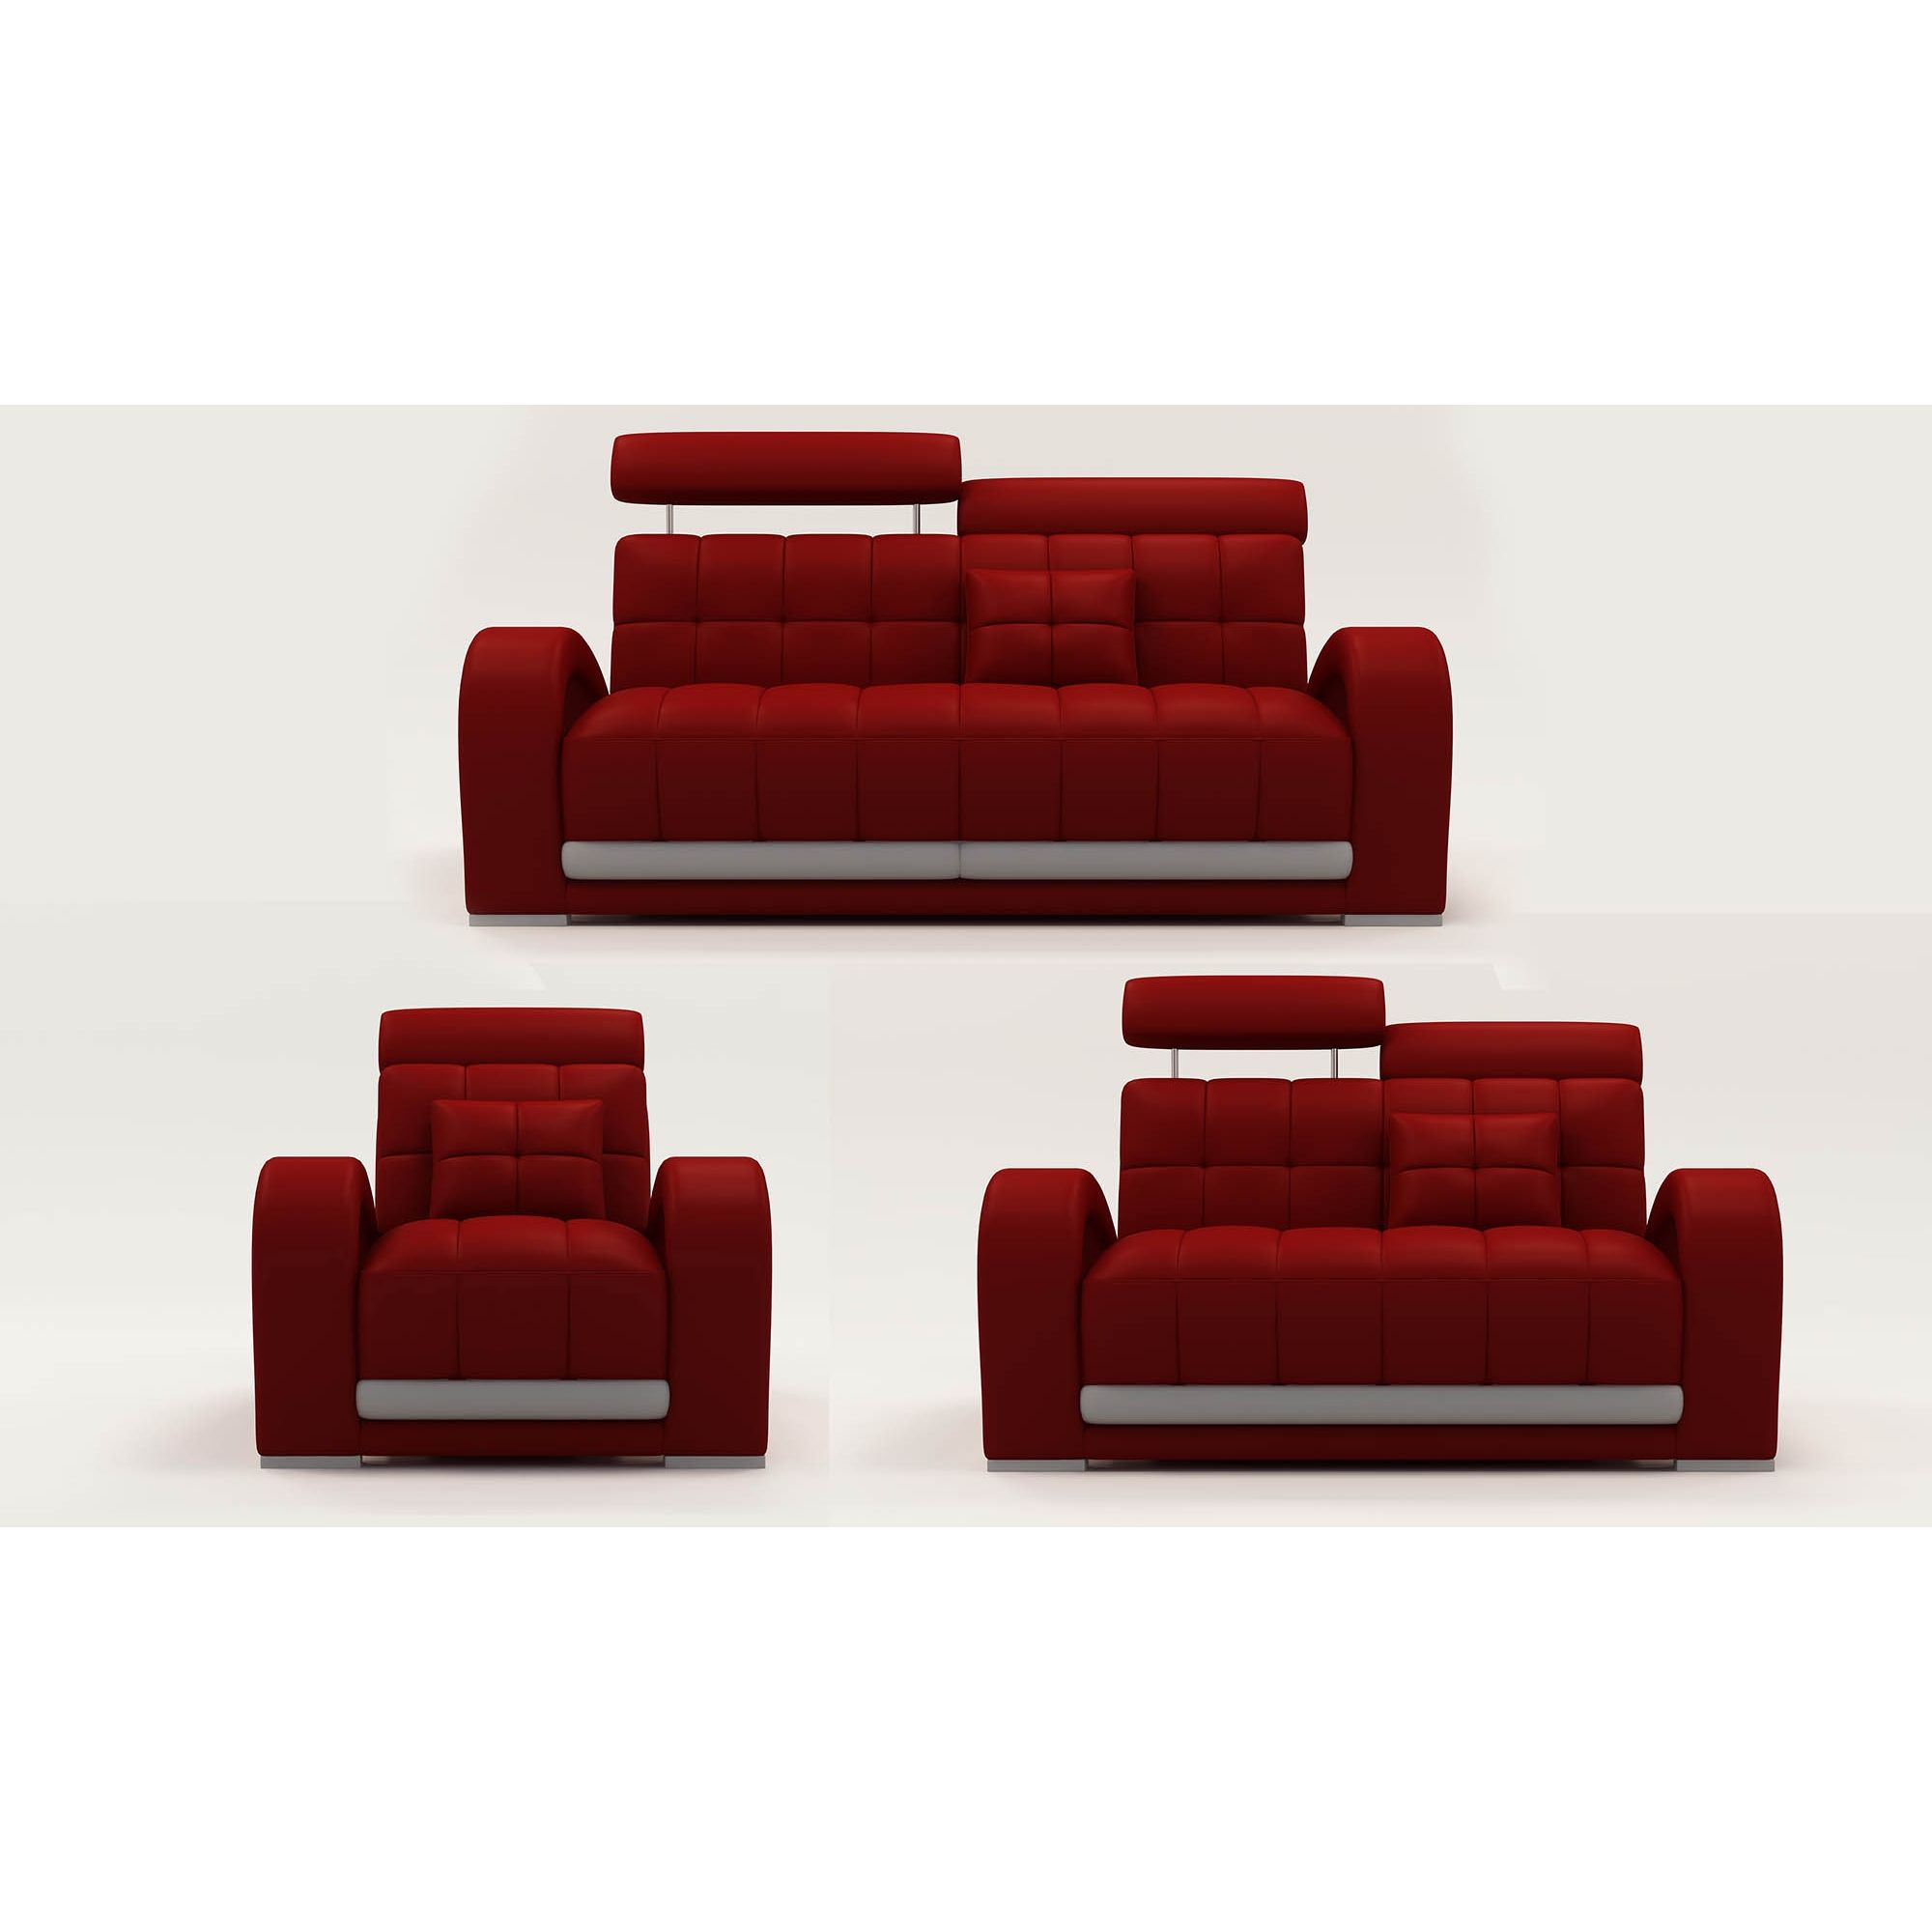 Deco in paris ensemble canape cuir verdi 3 1 1 places rouge et gris 2232 ro - Ensemble canape 3 2 1 ...